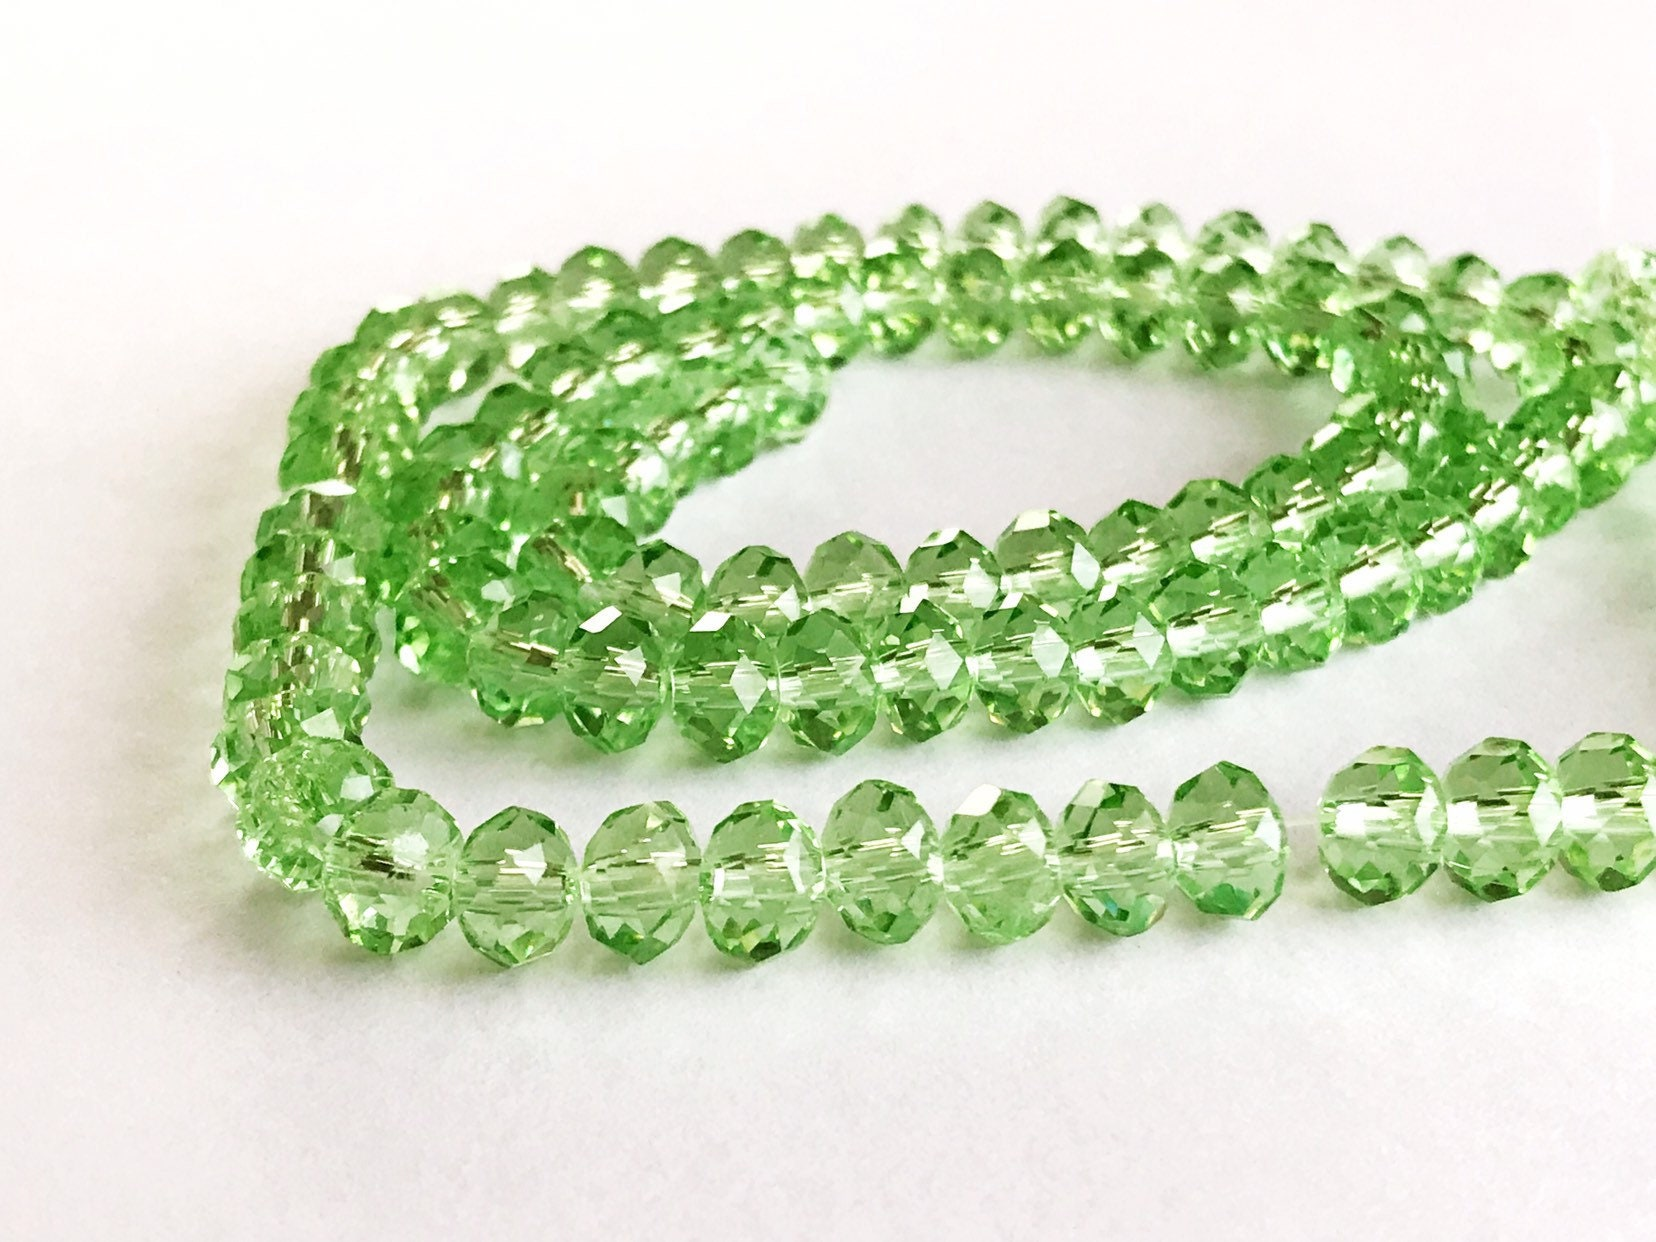 0f244af1b00ed 4 mm x 6 mm green glass rondelle x 40 faceted bead clear leaf green  crystal, 40 pcs